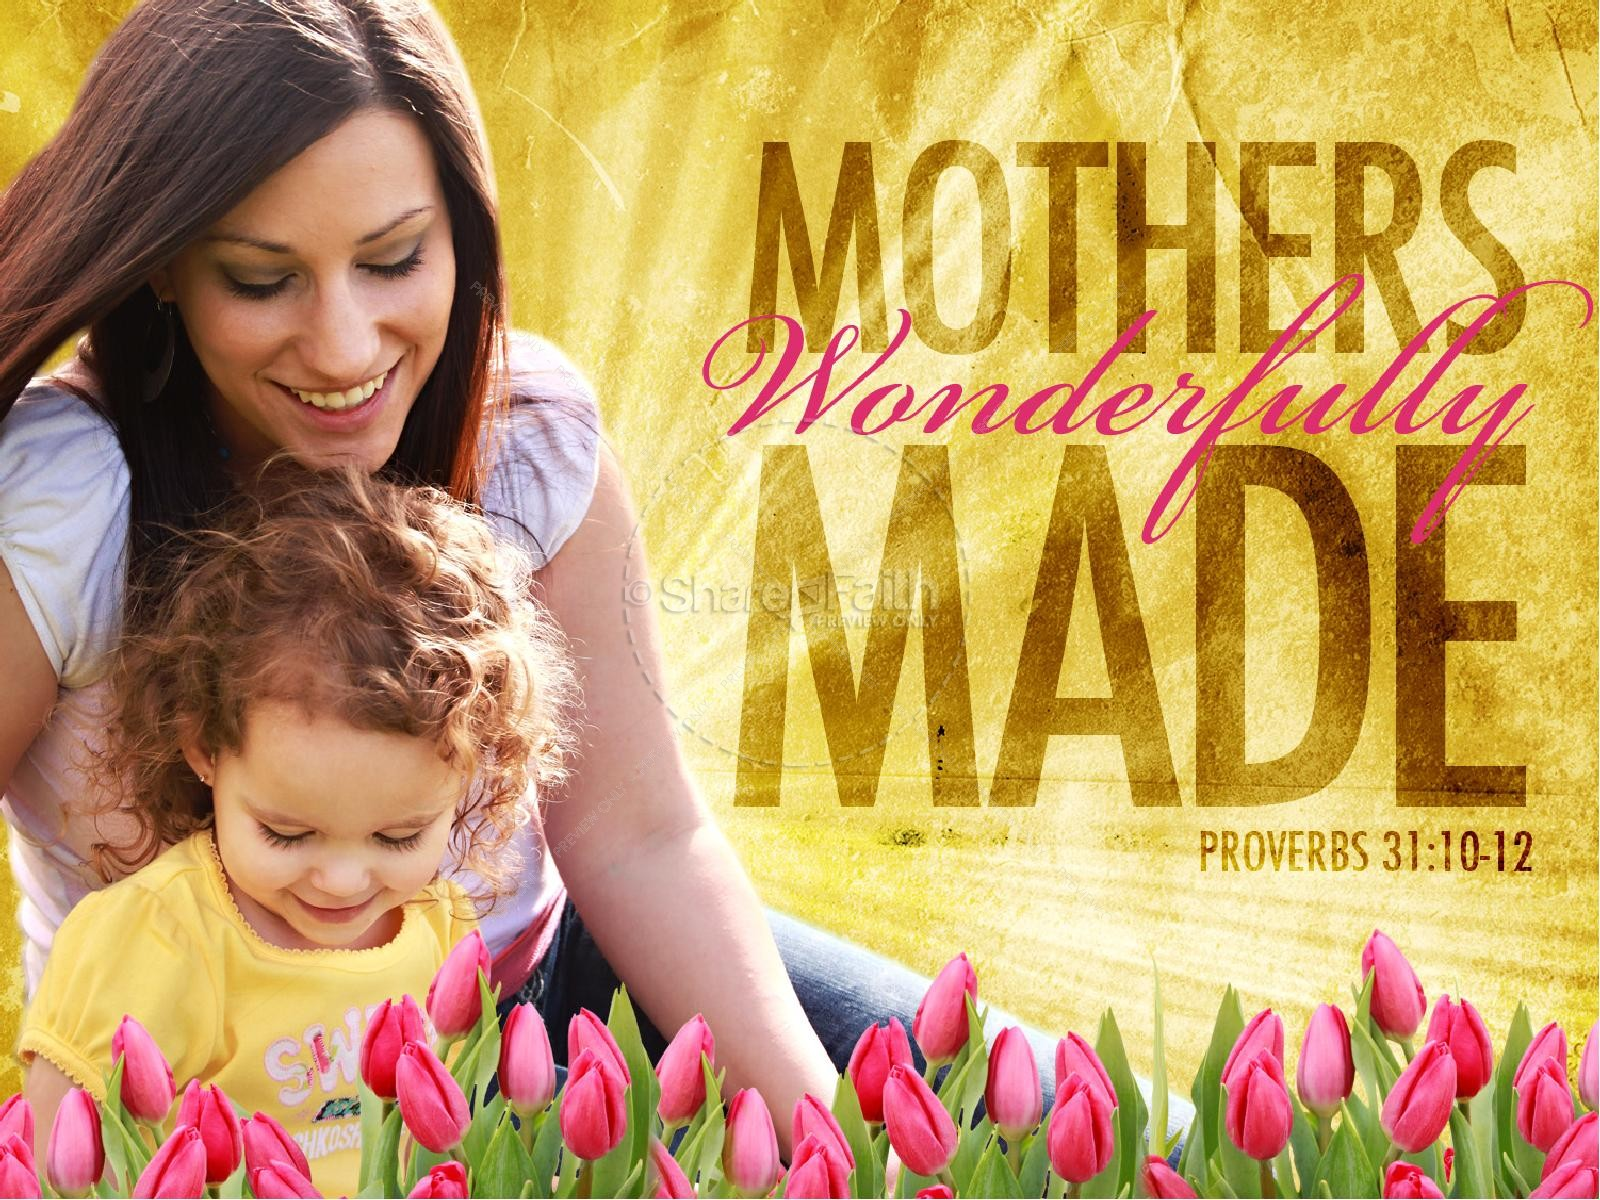 Mothers Wonderfully Made PowerPoint